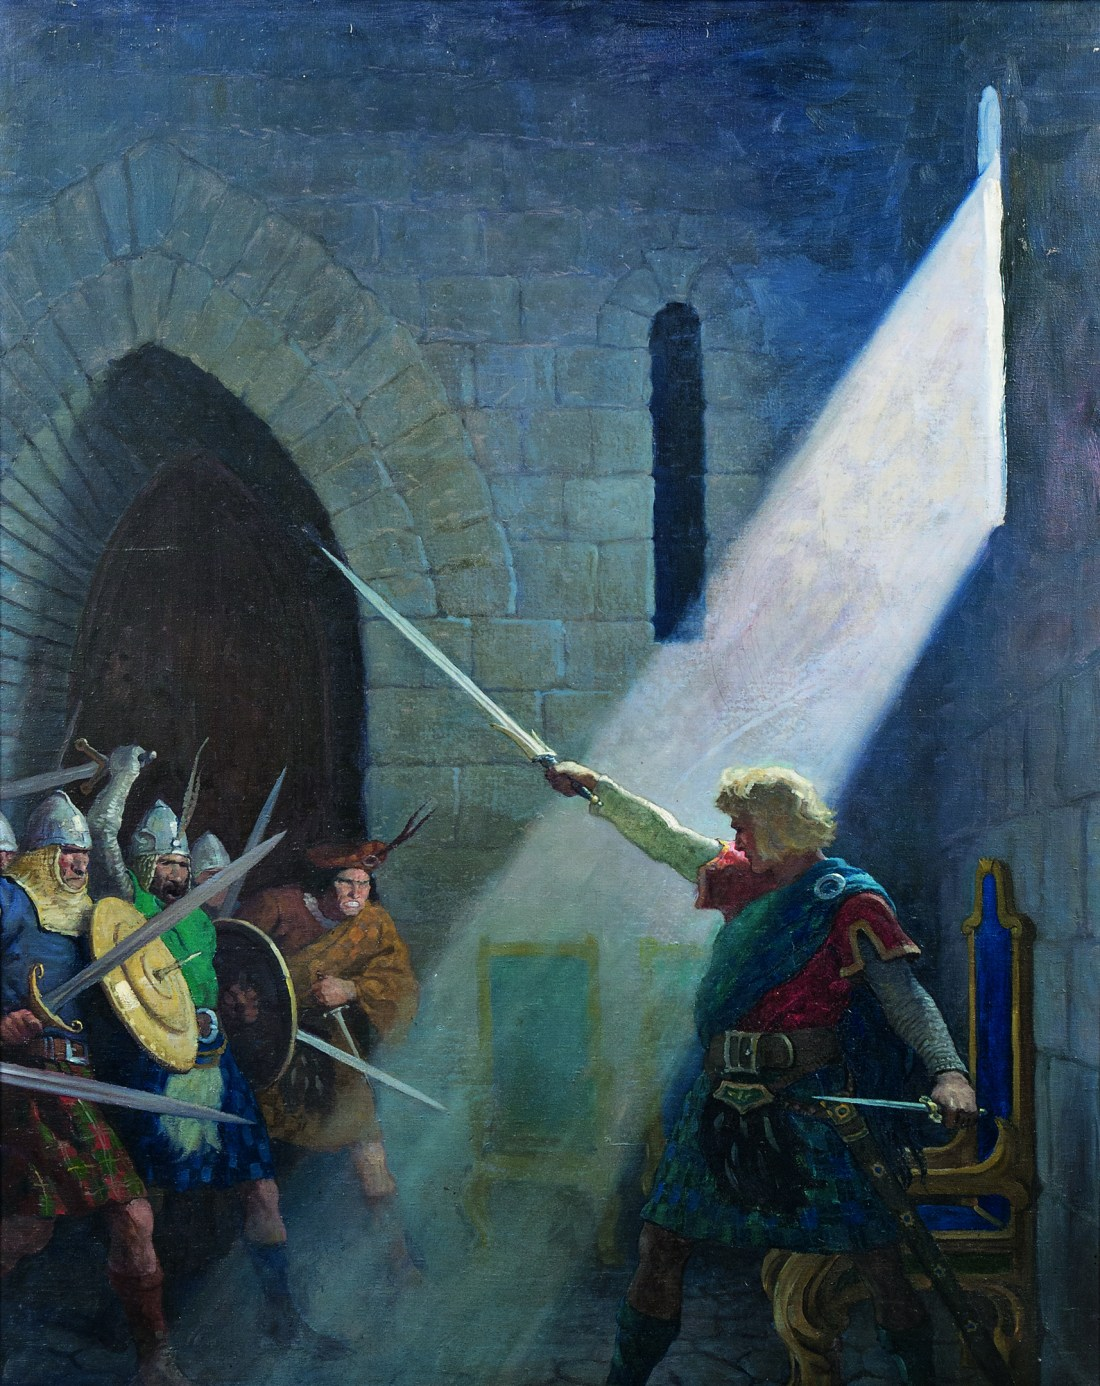 Wallace Draws the King's Sword, an illustration that N.C. Wyeth painted for the 1921 book The Scottish Chiefs.